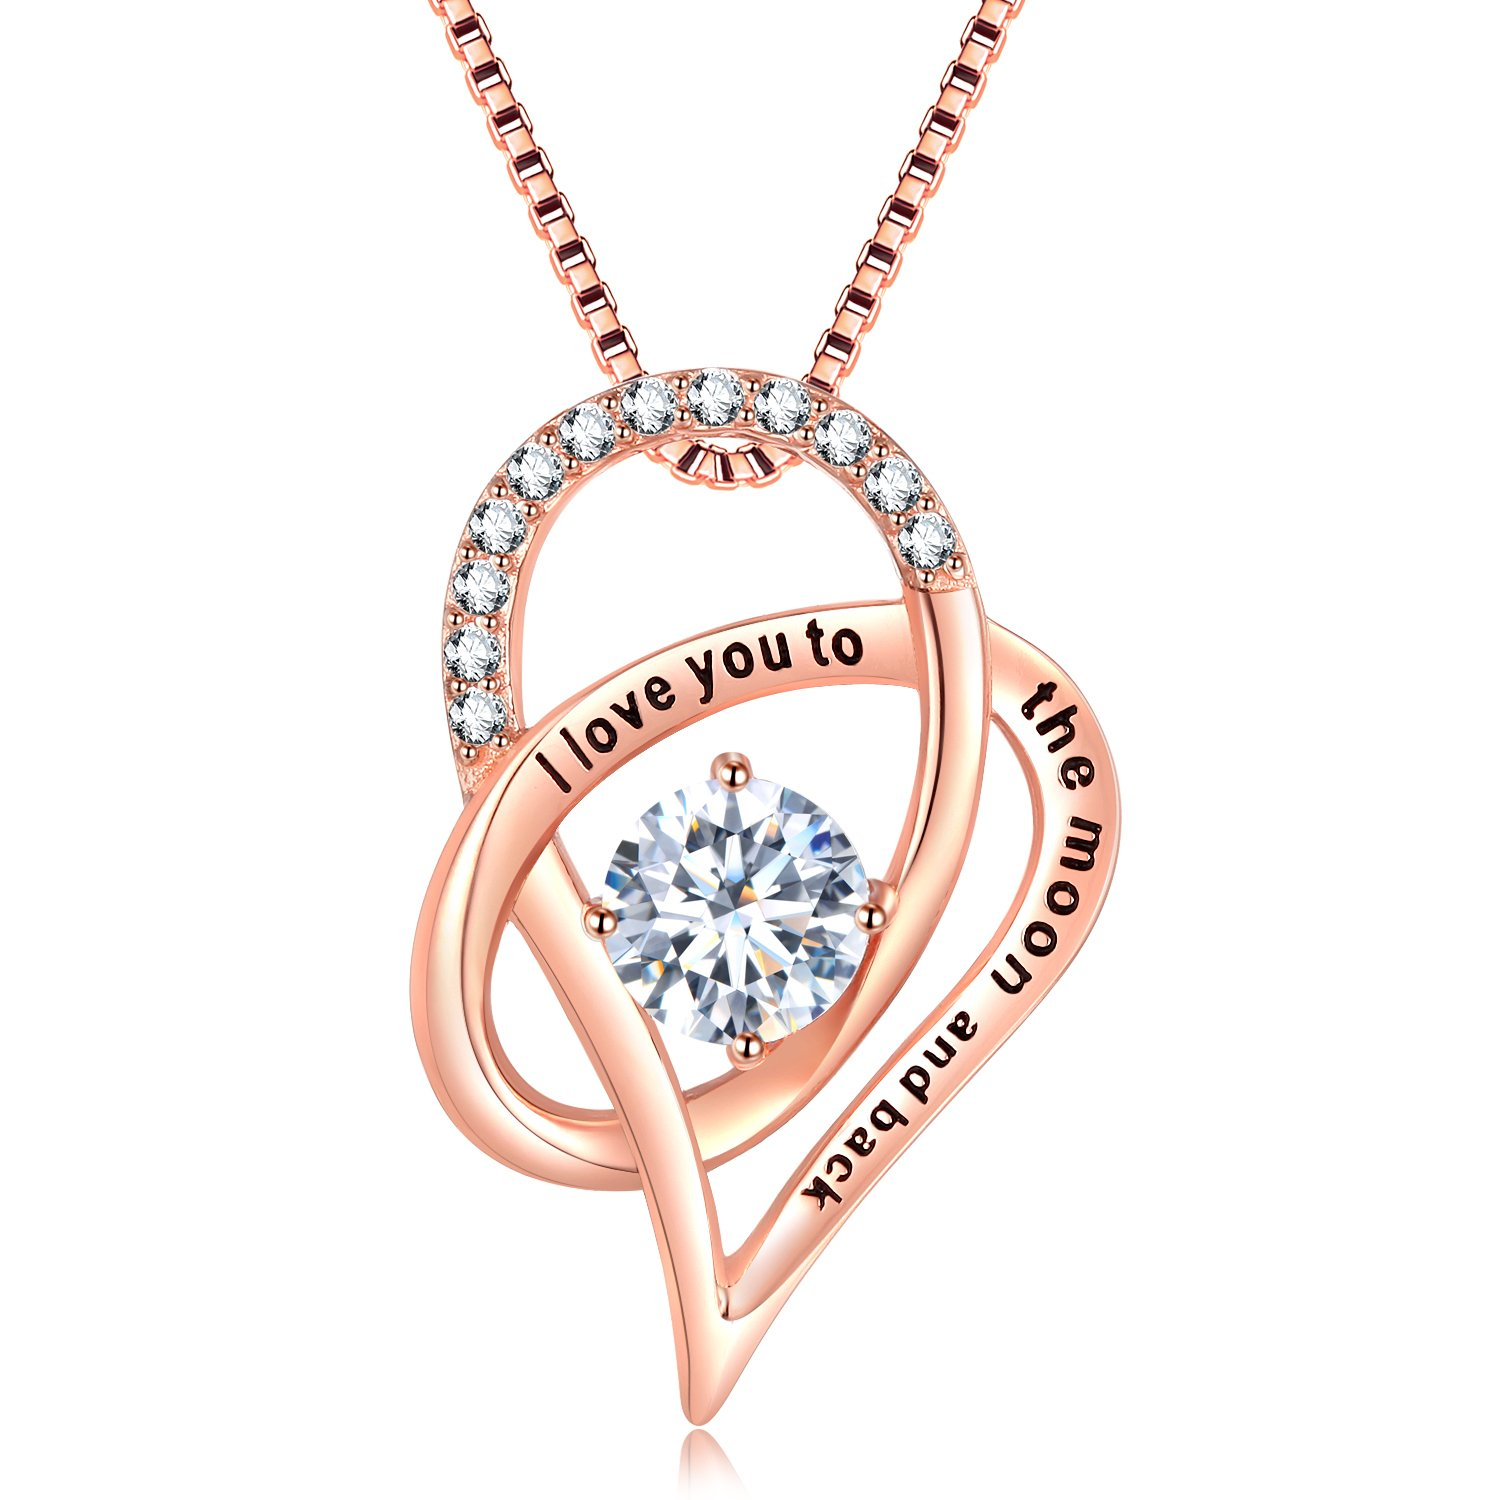 SOMEN TUNGSTEN 925 Sterling Silver Rose Gold I Love You to The Moon and Back Necklace Cubic Zirconia Heart Pendant